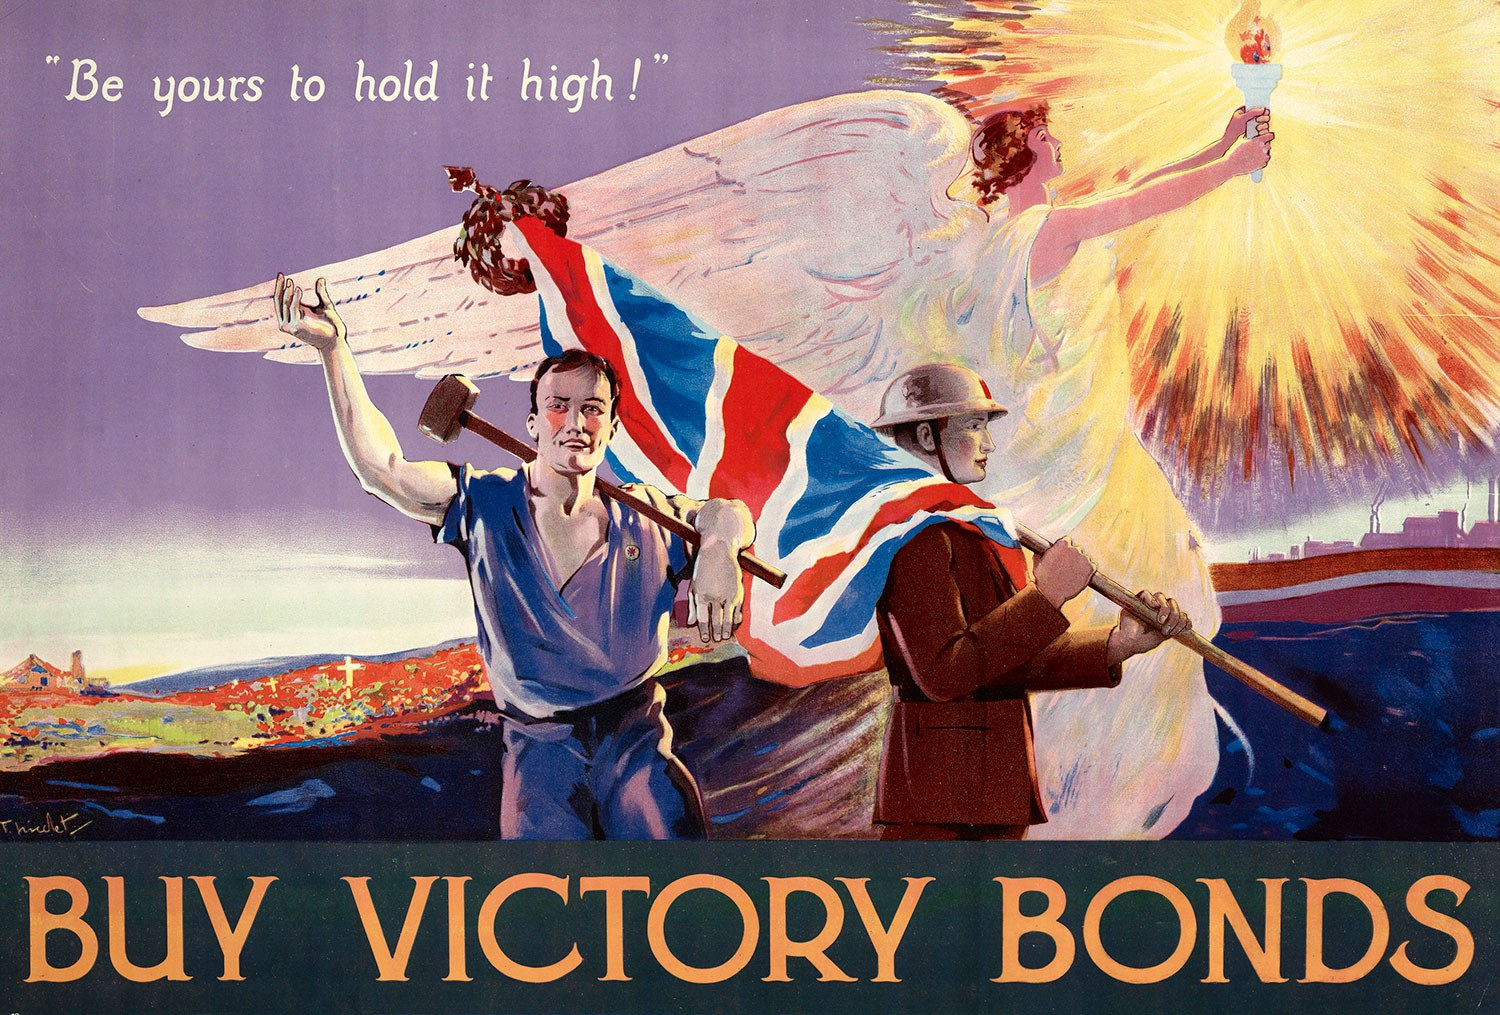 """""""Be yours to hold it high!"""" Buy Victory Bonds propaganda poster"""